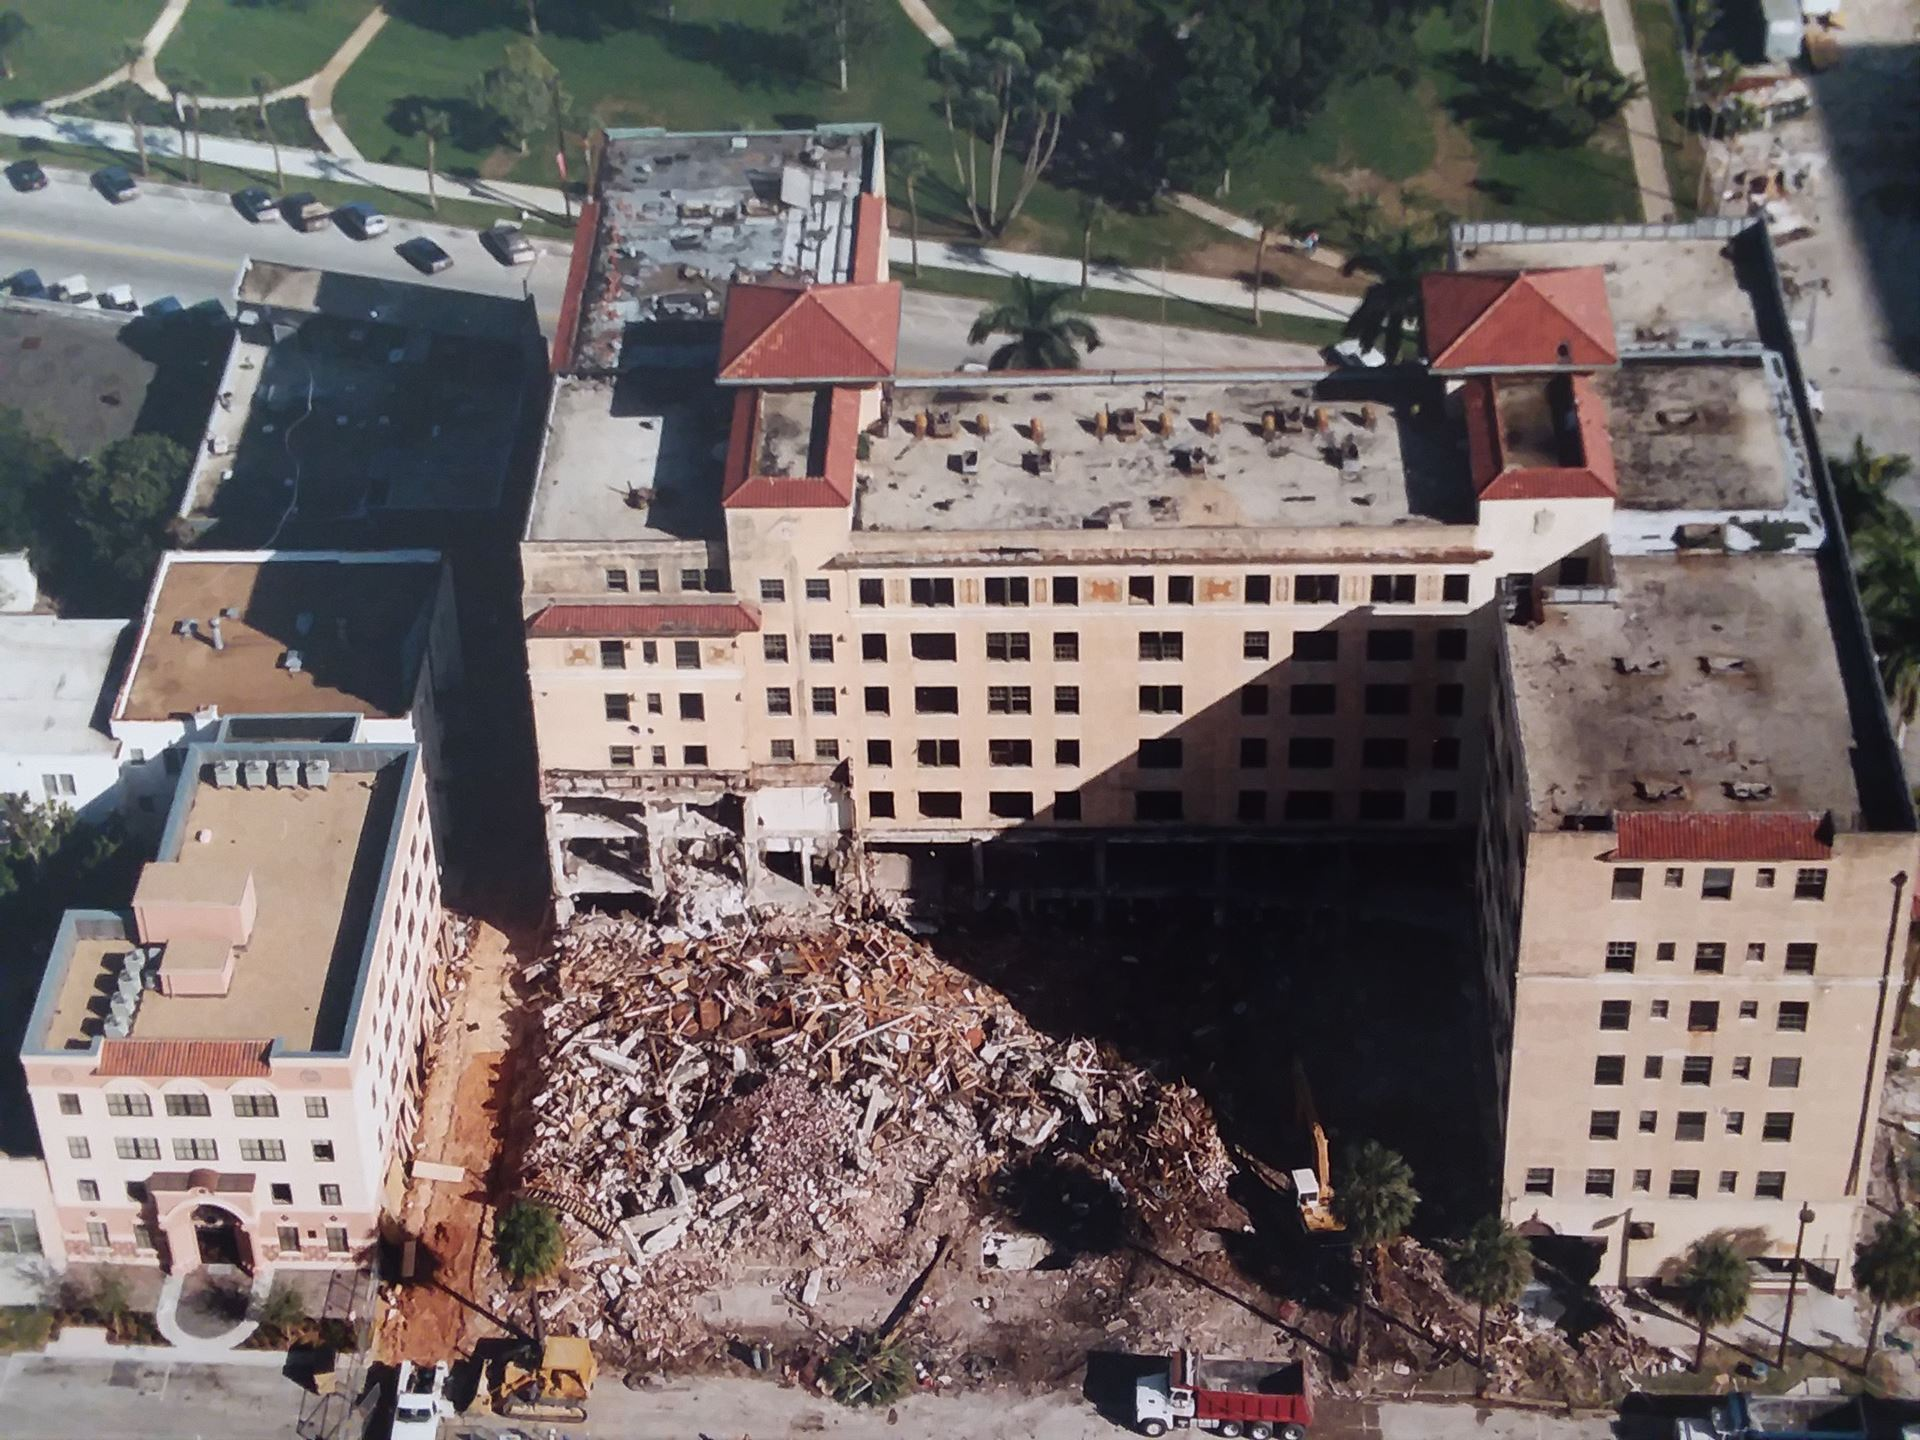 An aerial view of a building being demolished